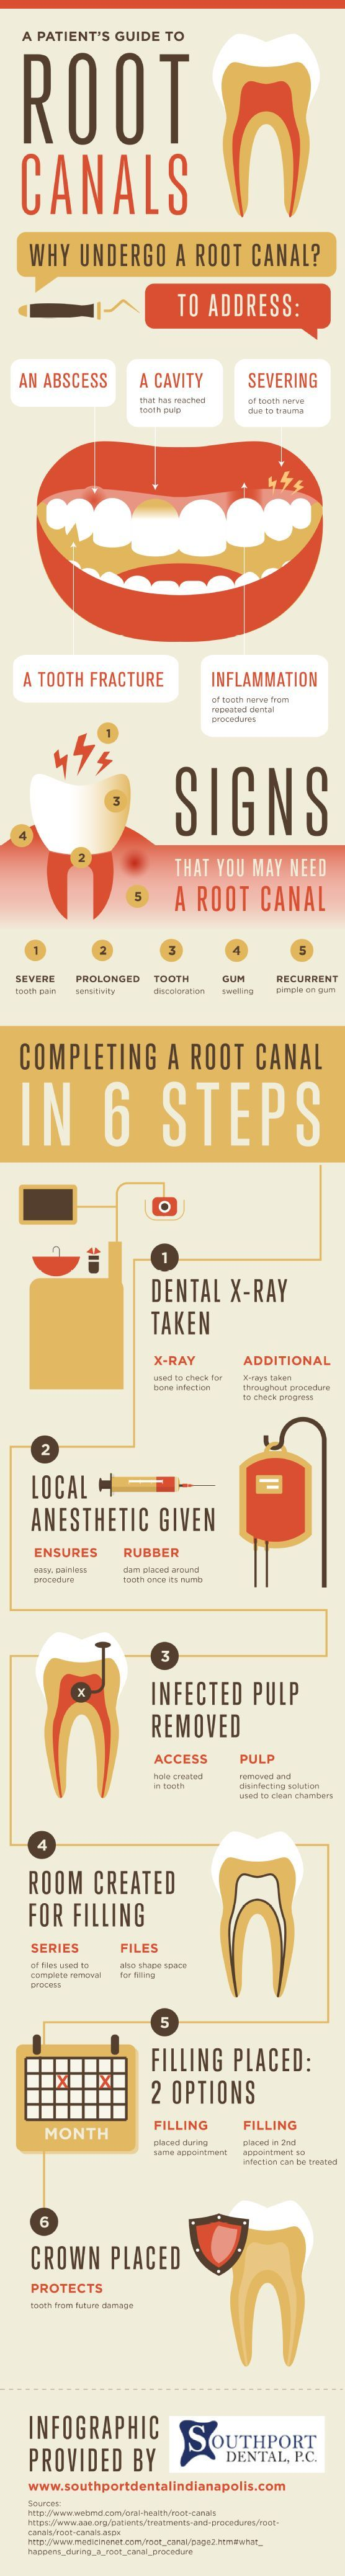 If a tooths nerve is inflamed after repeated dental procedures, root canal treatment may be necessary to provide relief. Get more details about root canal treatment by clicking over to this infographic from a dentist in Des Moines.